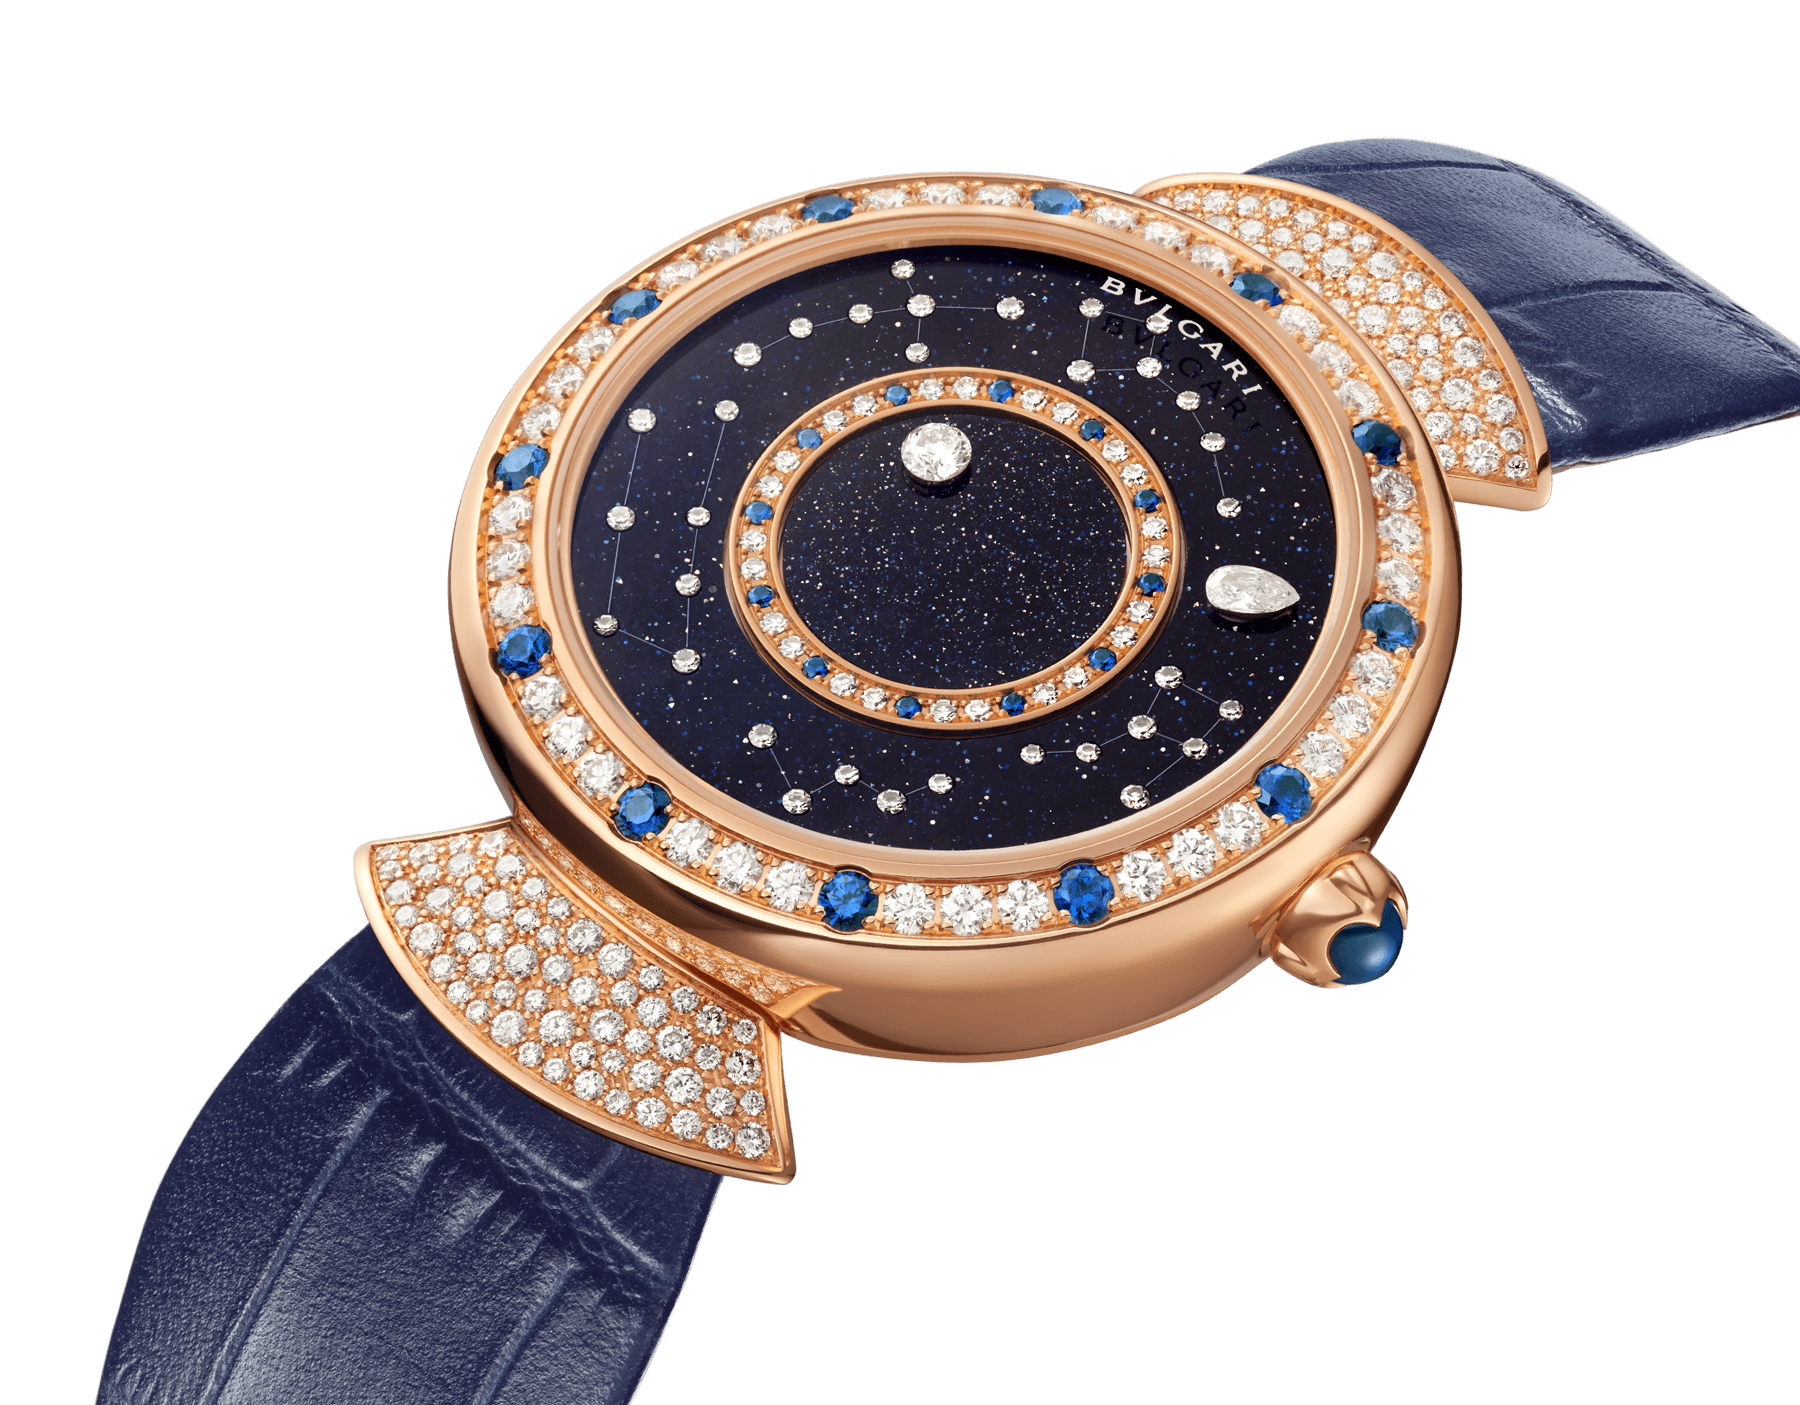 DIVAS' DREAM watch with mechanical manufacture movement, automatic winding, 18 kt rose gold case set with round brilliant-cut diamonds and sapphires, aventurine rotating discs with diamonds and printed constellations and dark blue alligator bracelet 102843 image 2